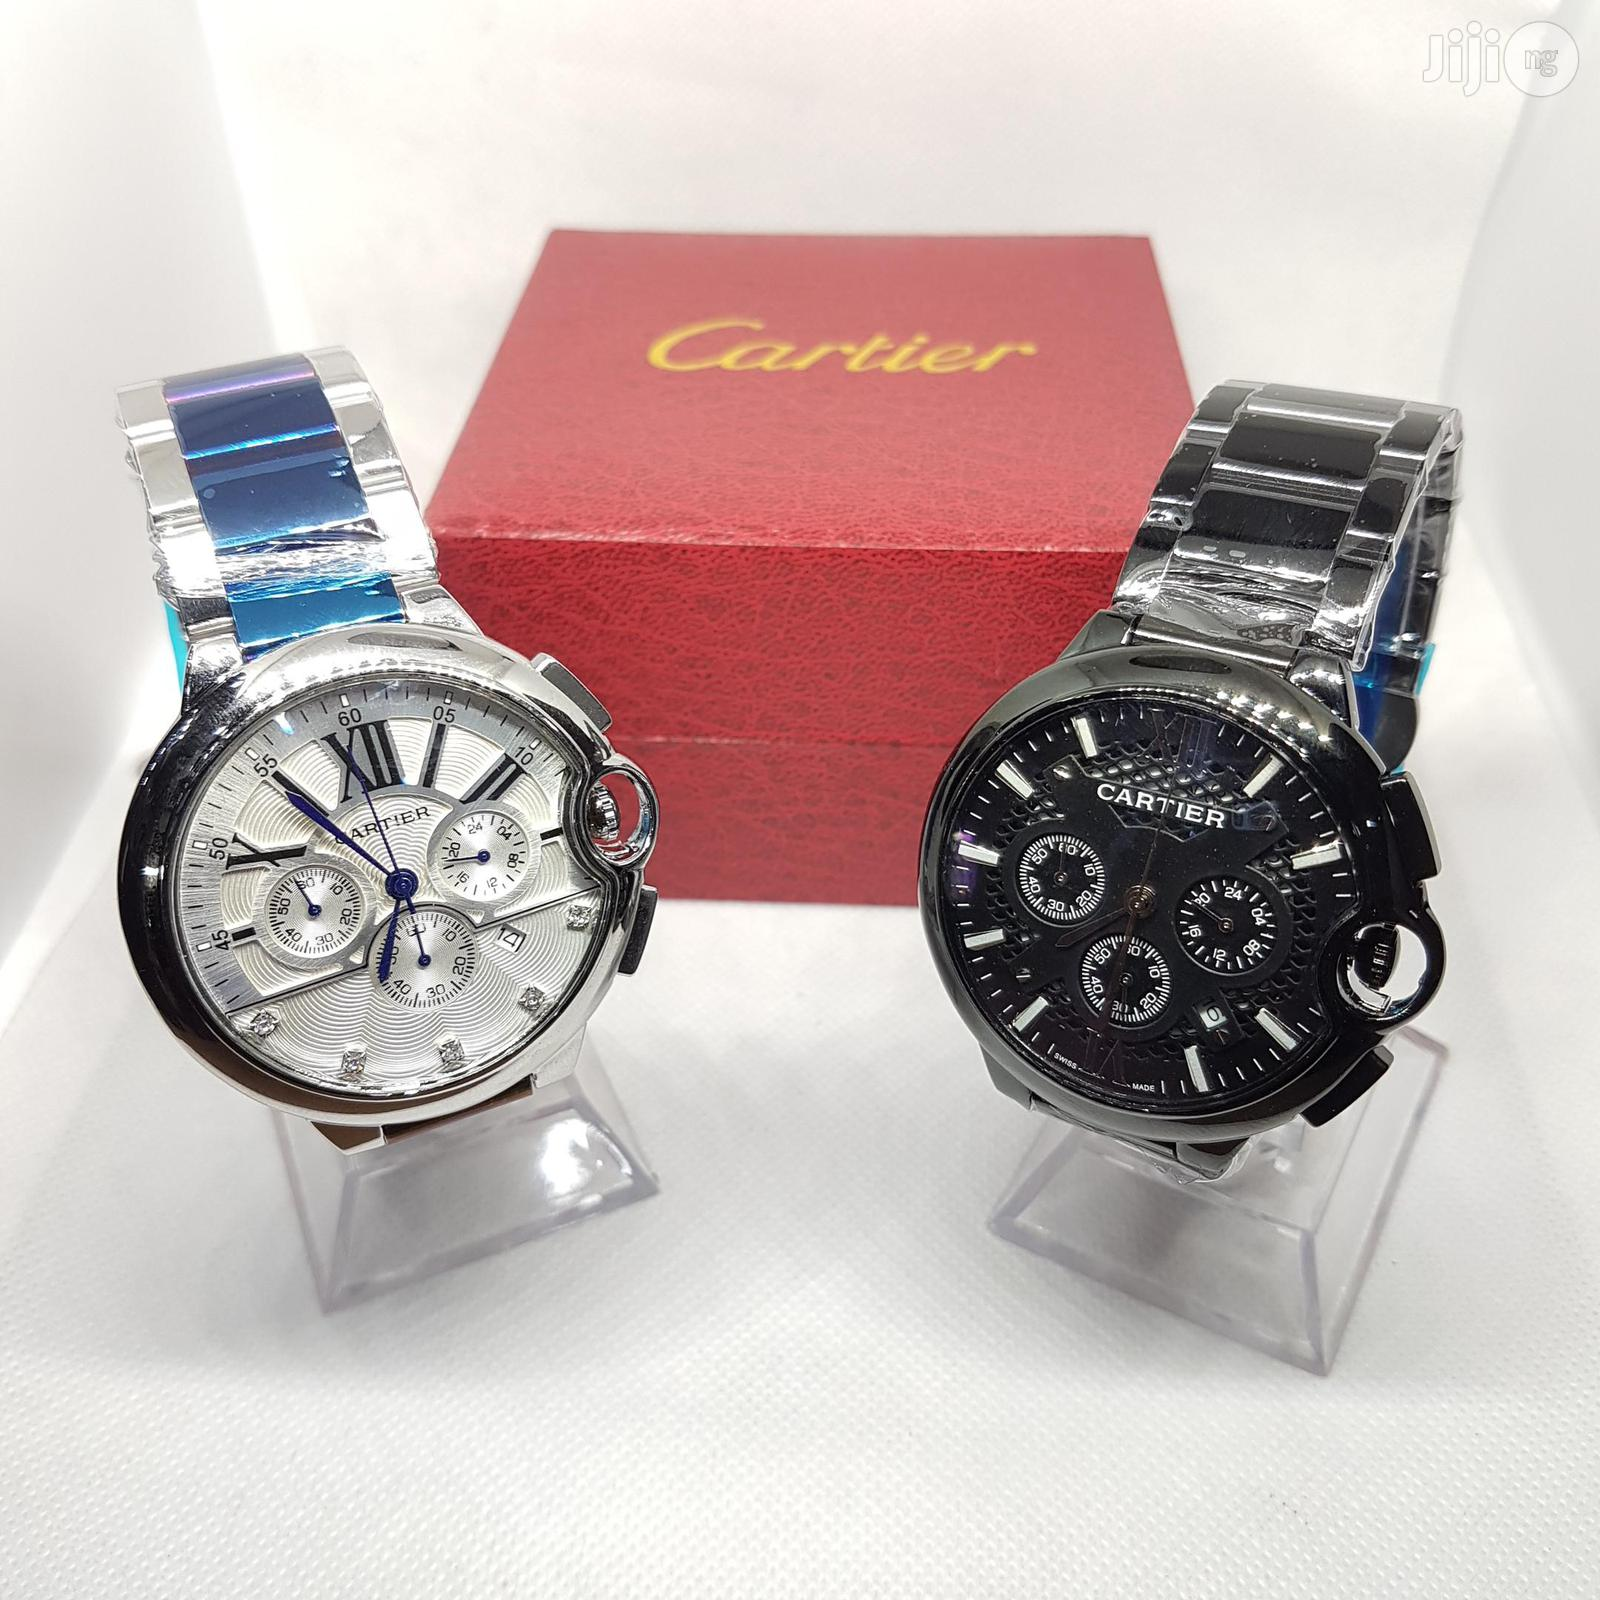 Main Original Cartier Wristwatch With Chronograph and Date.